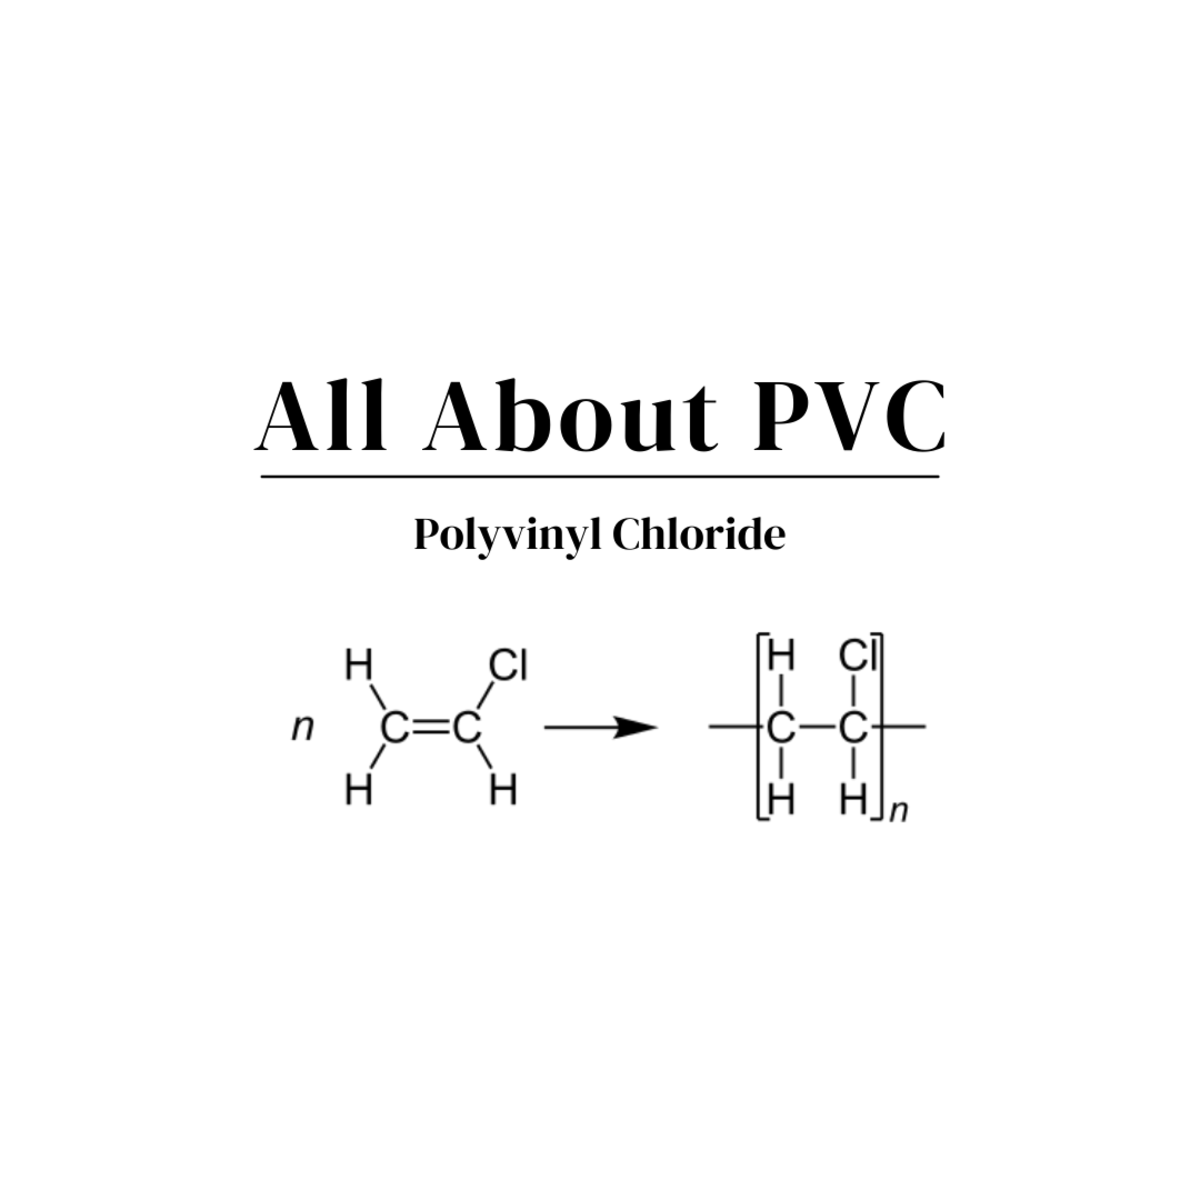 All About PVC (Polyvinyl Chloride)